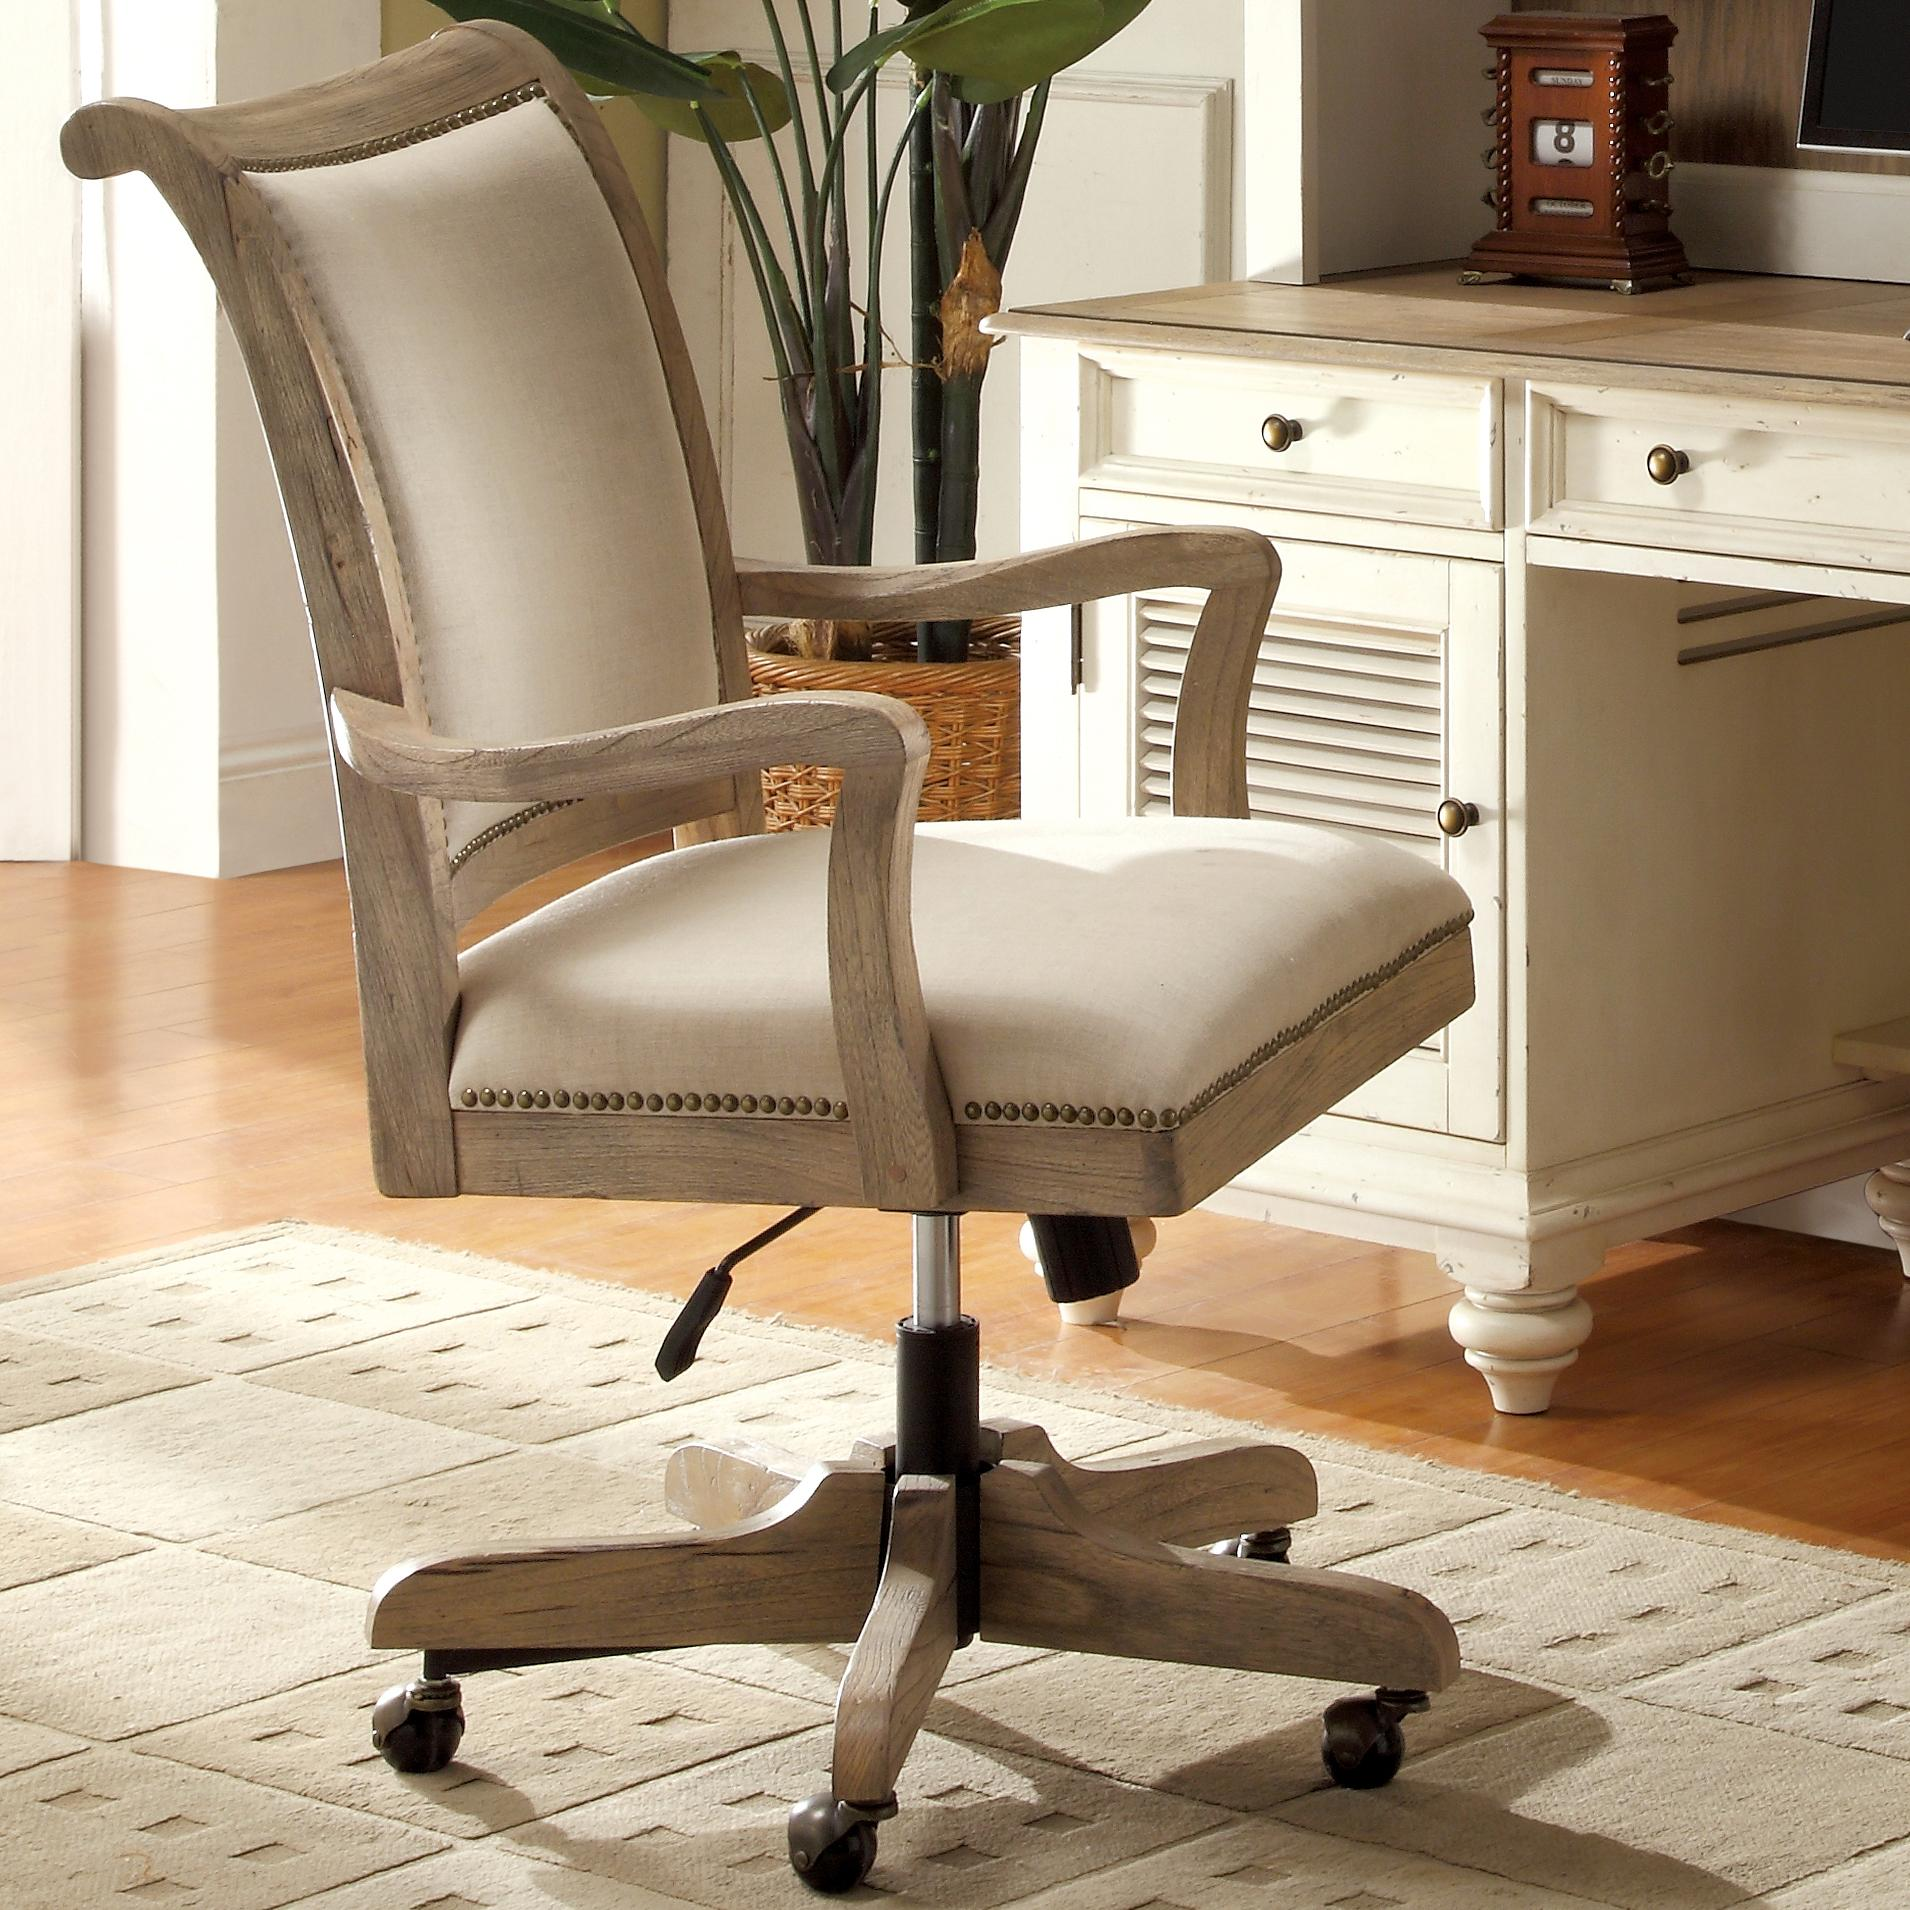 Riverside Furniture Coventry Adjustable Desk Chair Johnny Janosik Office Task Chair